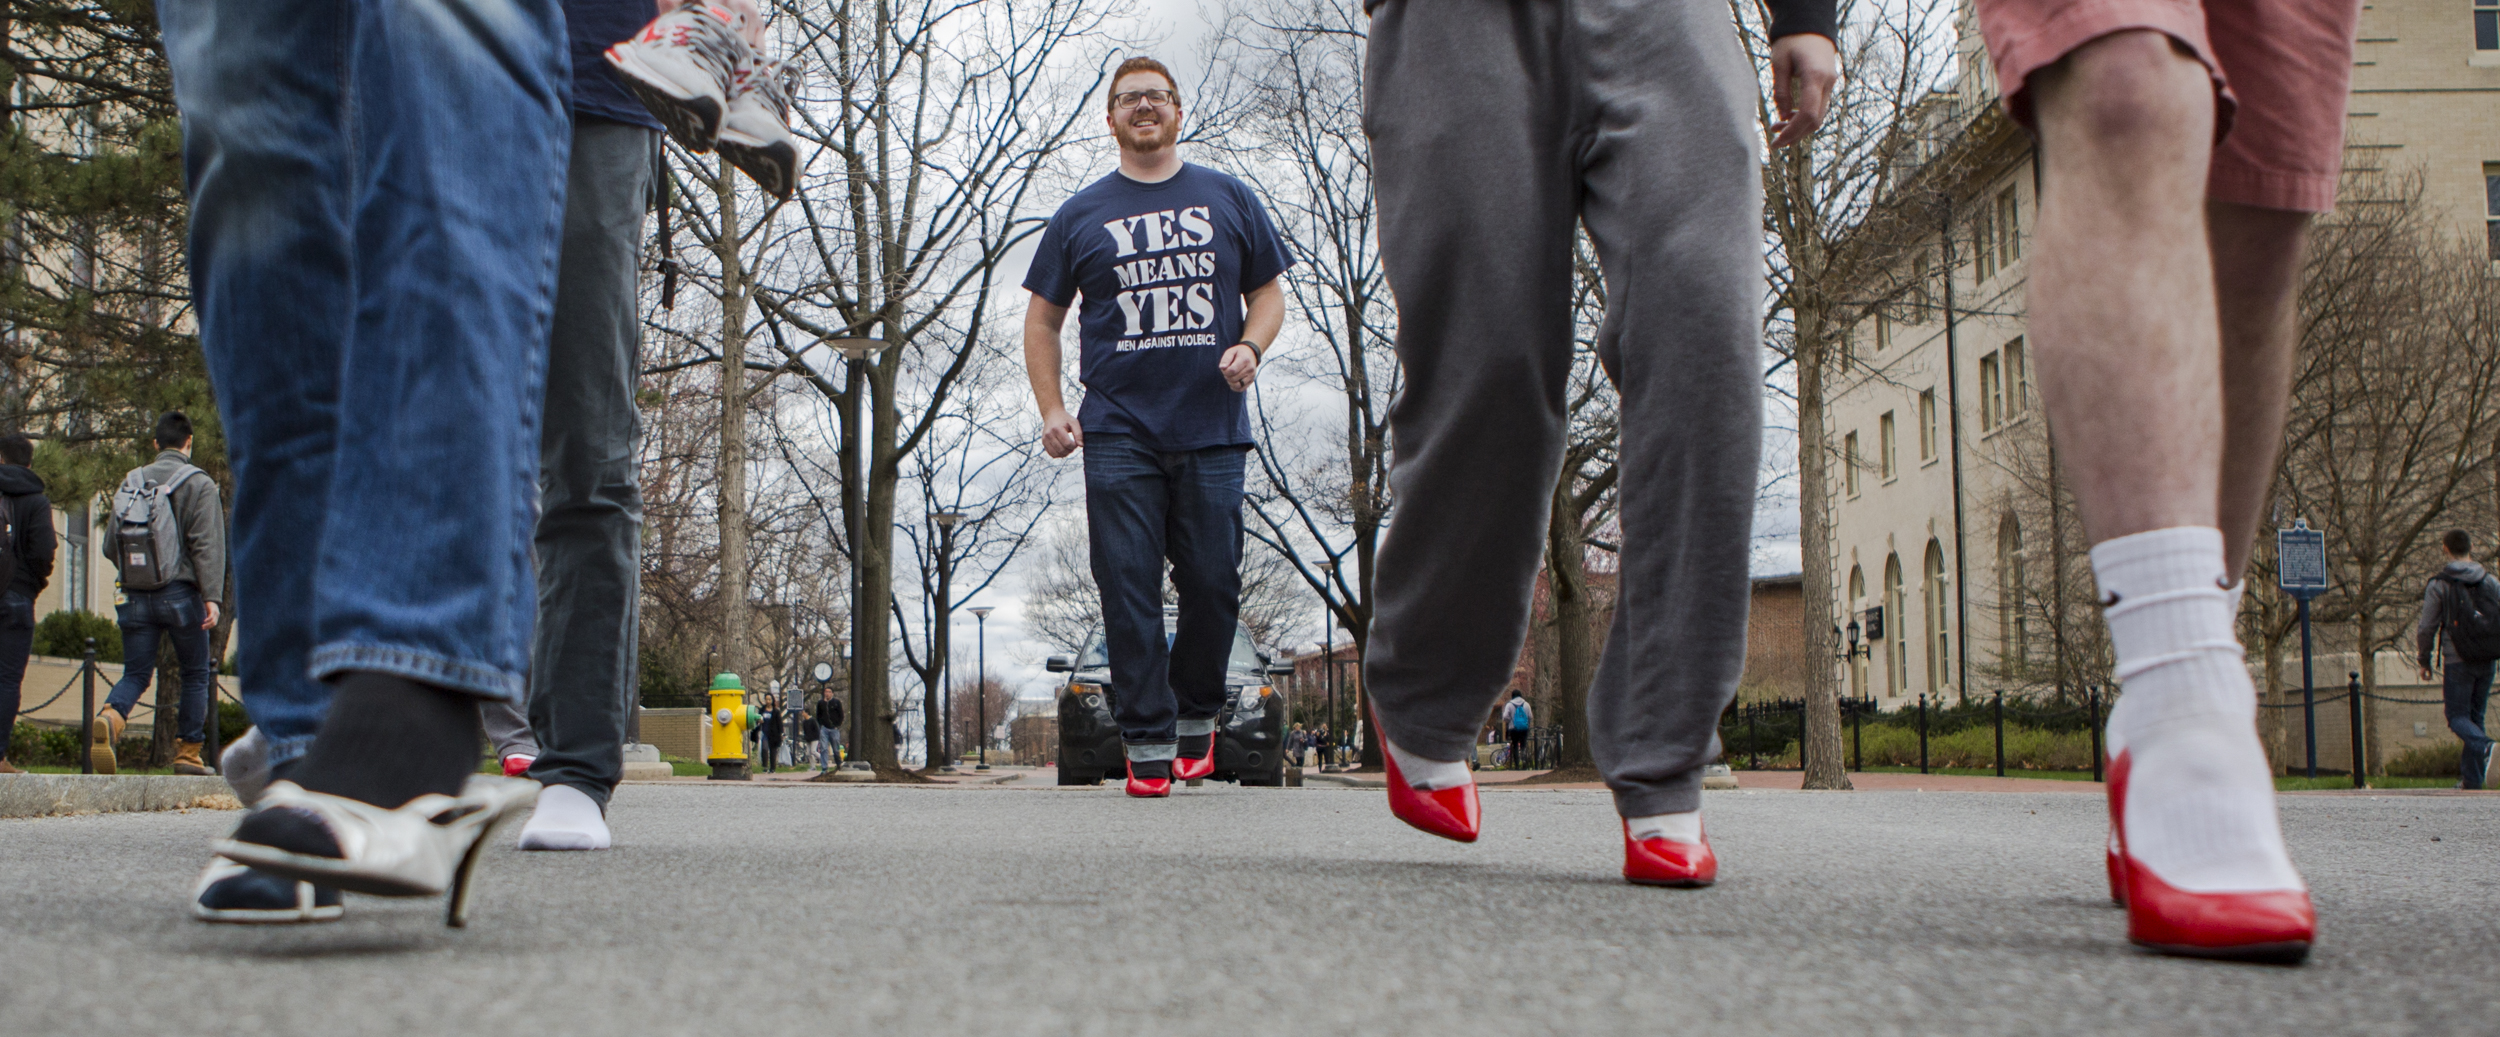 Director of Men Against Violence,Tim Donovan (graduate - higher education) brings up the rear of the Walk a Mile in Her Shoes march on Pollock Street on Monday, March 28, 2016.